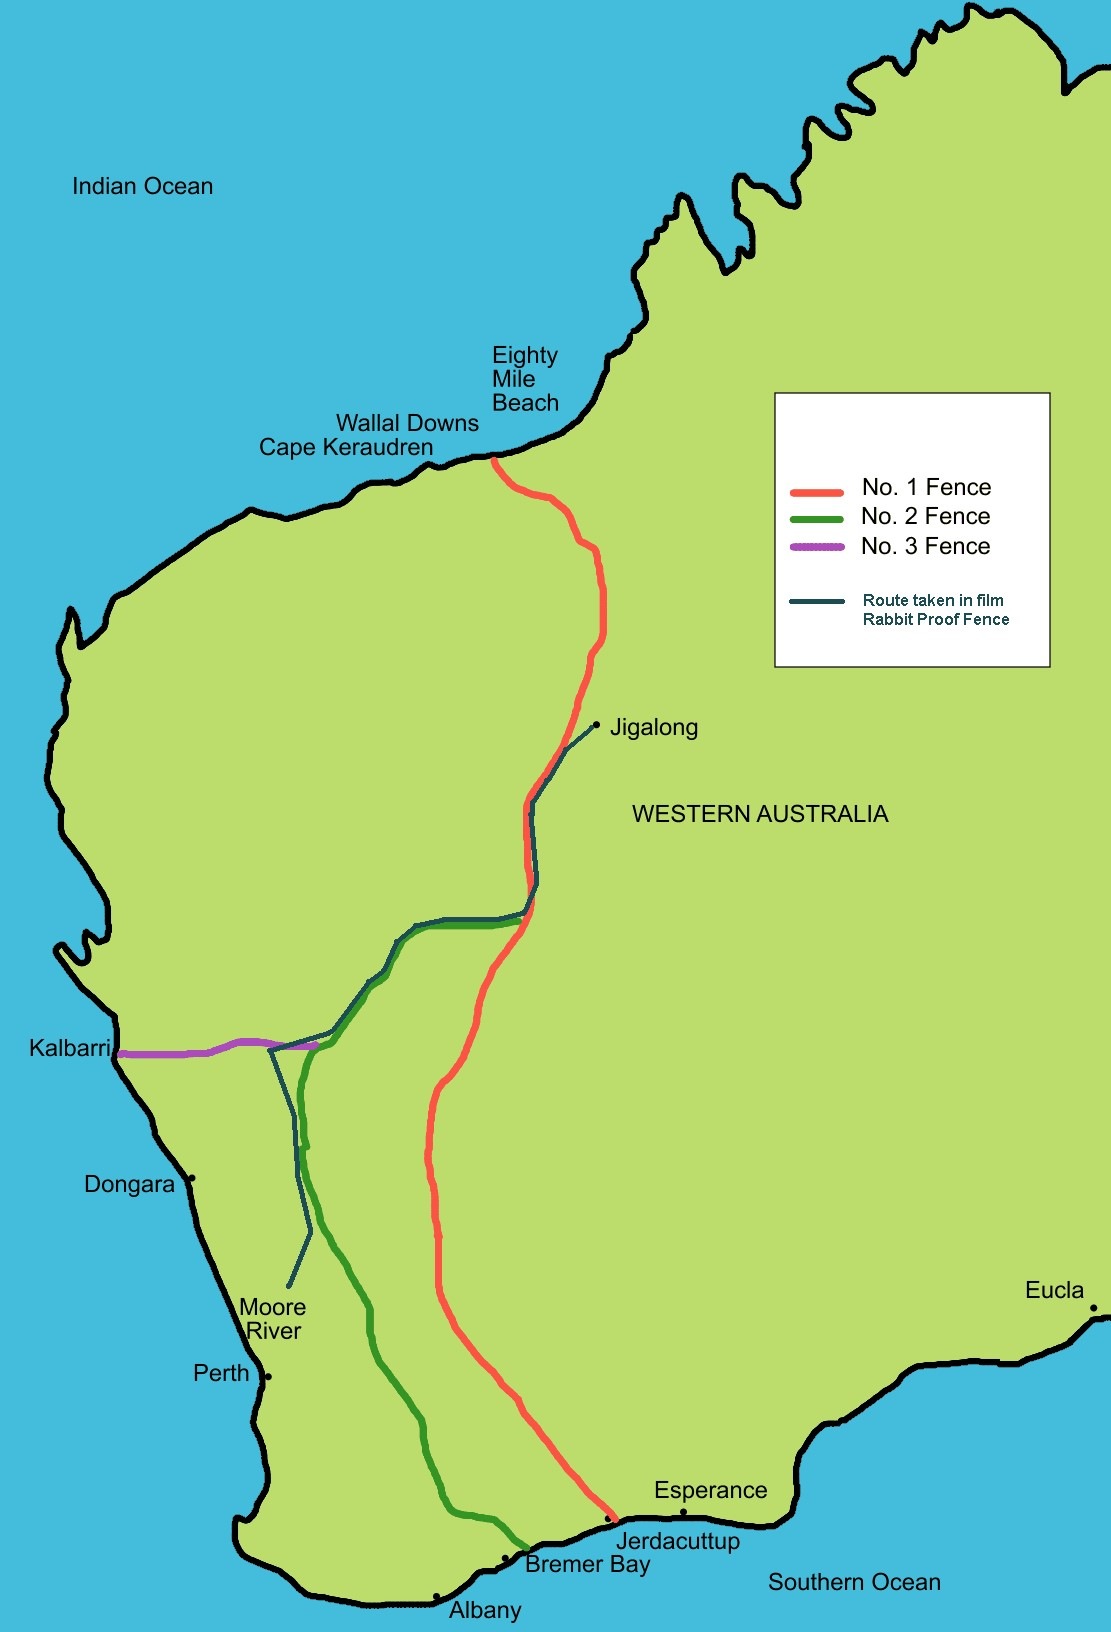 Rabbit_proof_fence_map_showing_route.jpg